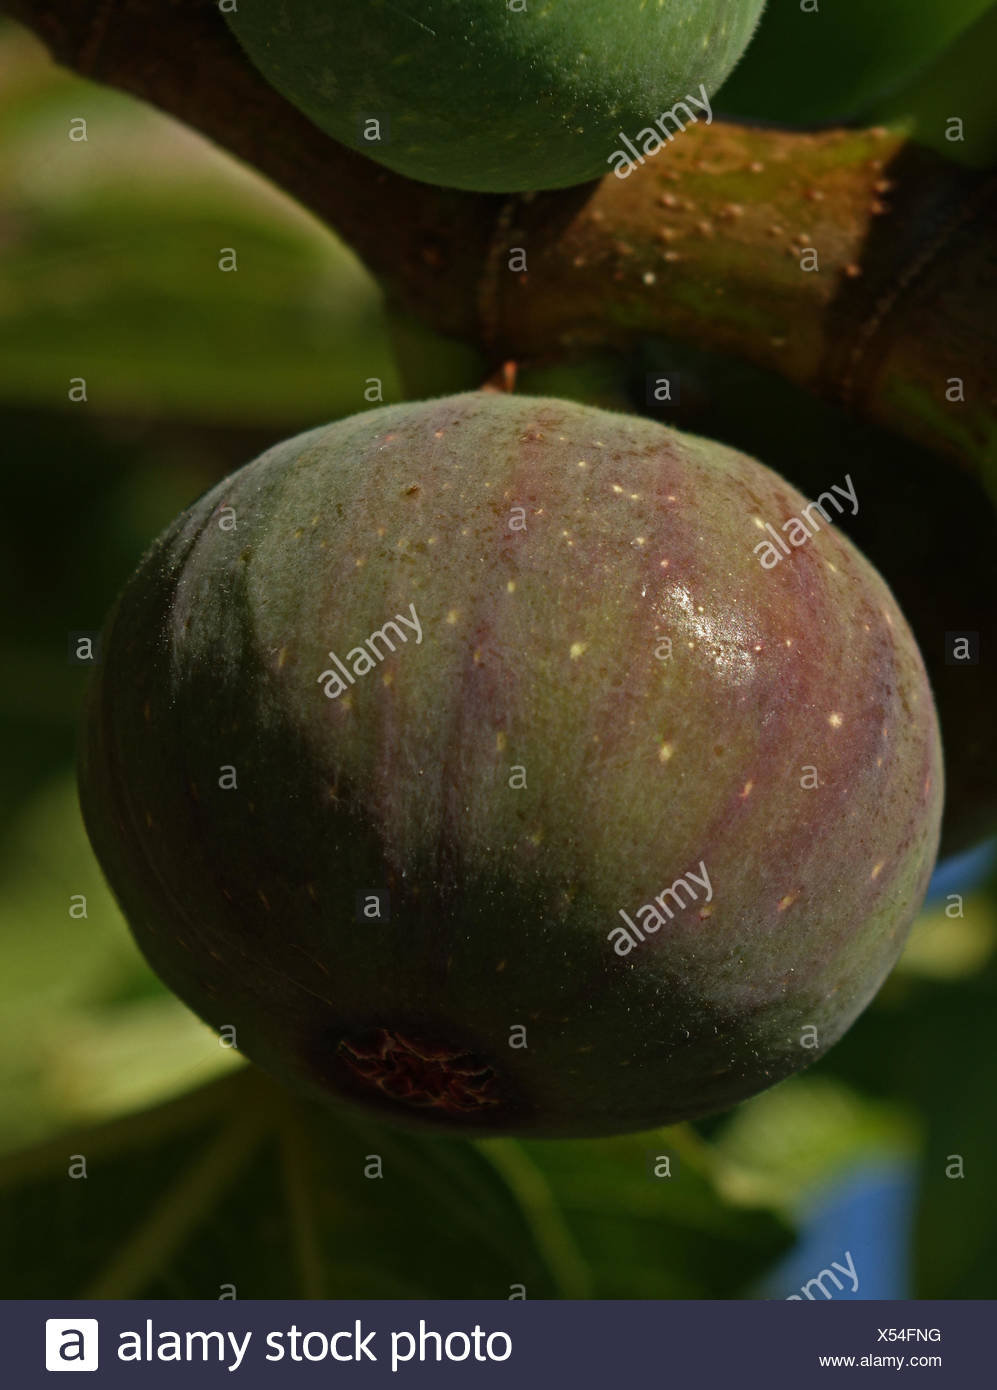 Fruit of the fig tree - Stock Image